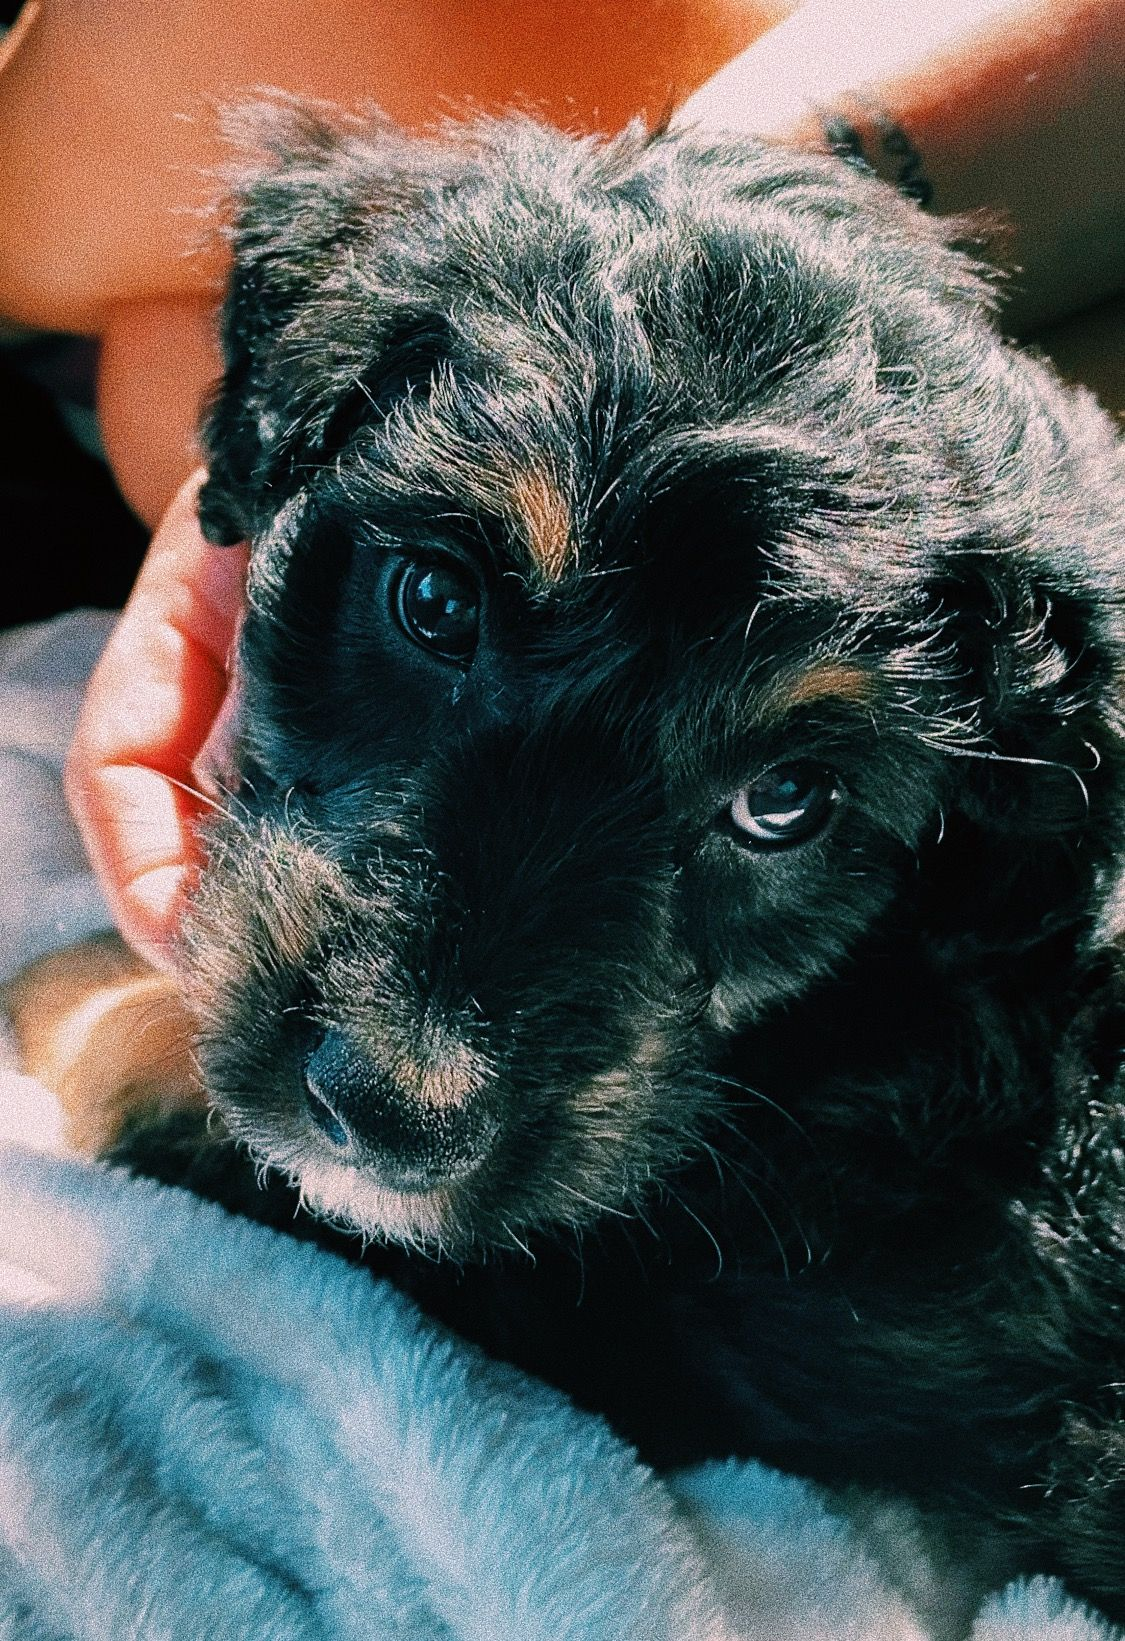 #puppy #vsco #aesthetic #cute #cutie #baby #dog #aussiedoodle #doodle #poodle #australianshepard #photography #picture #love #happy #vibes #filter #2020 #summer #spring #fall #winter #autumn